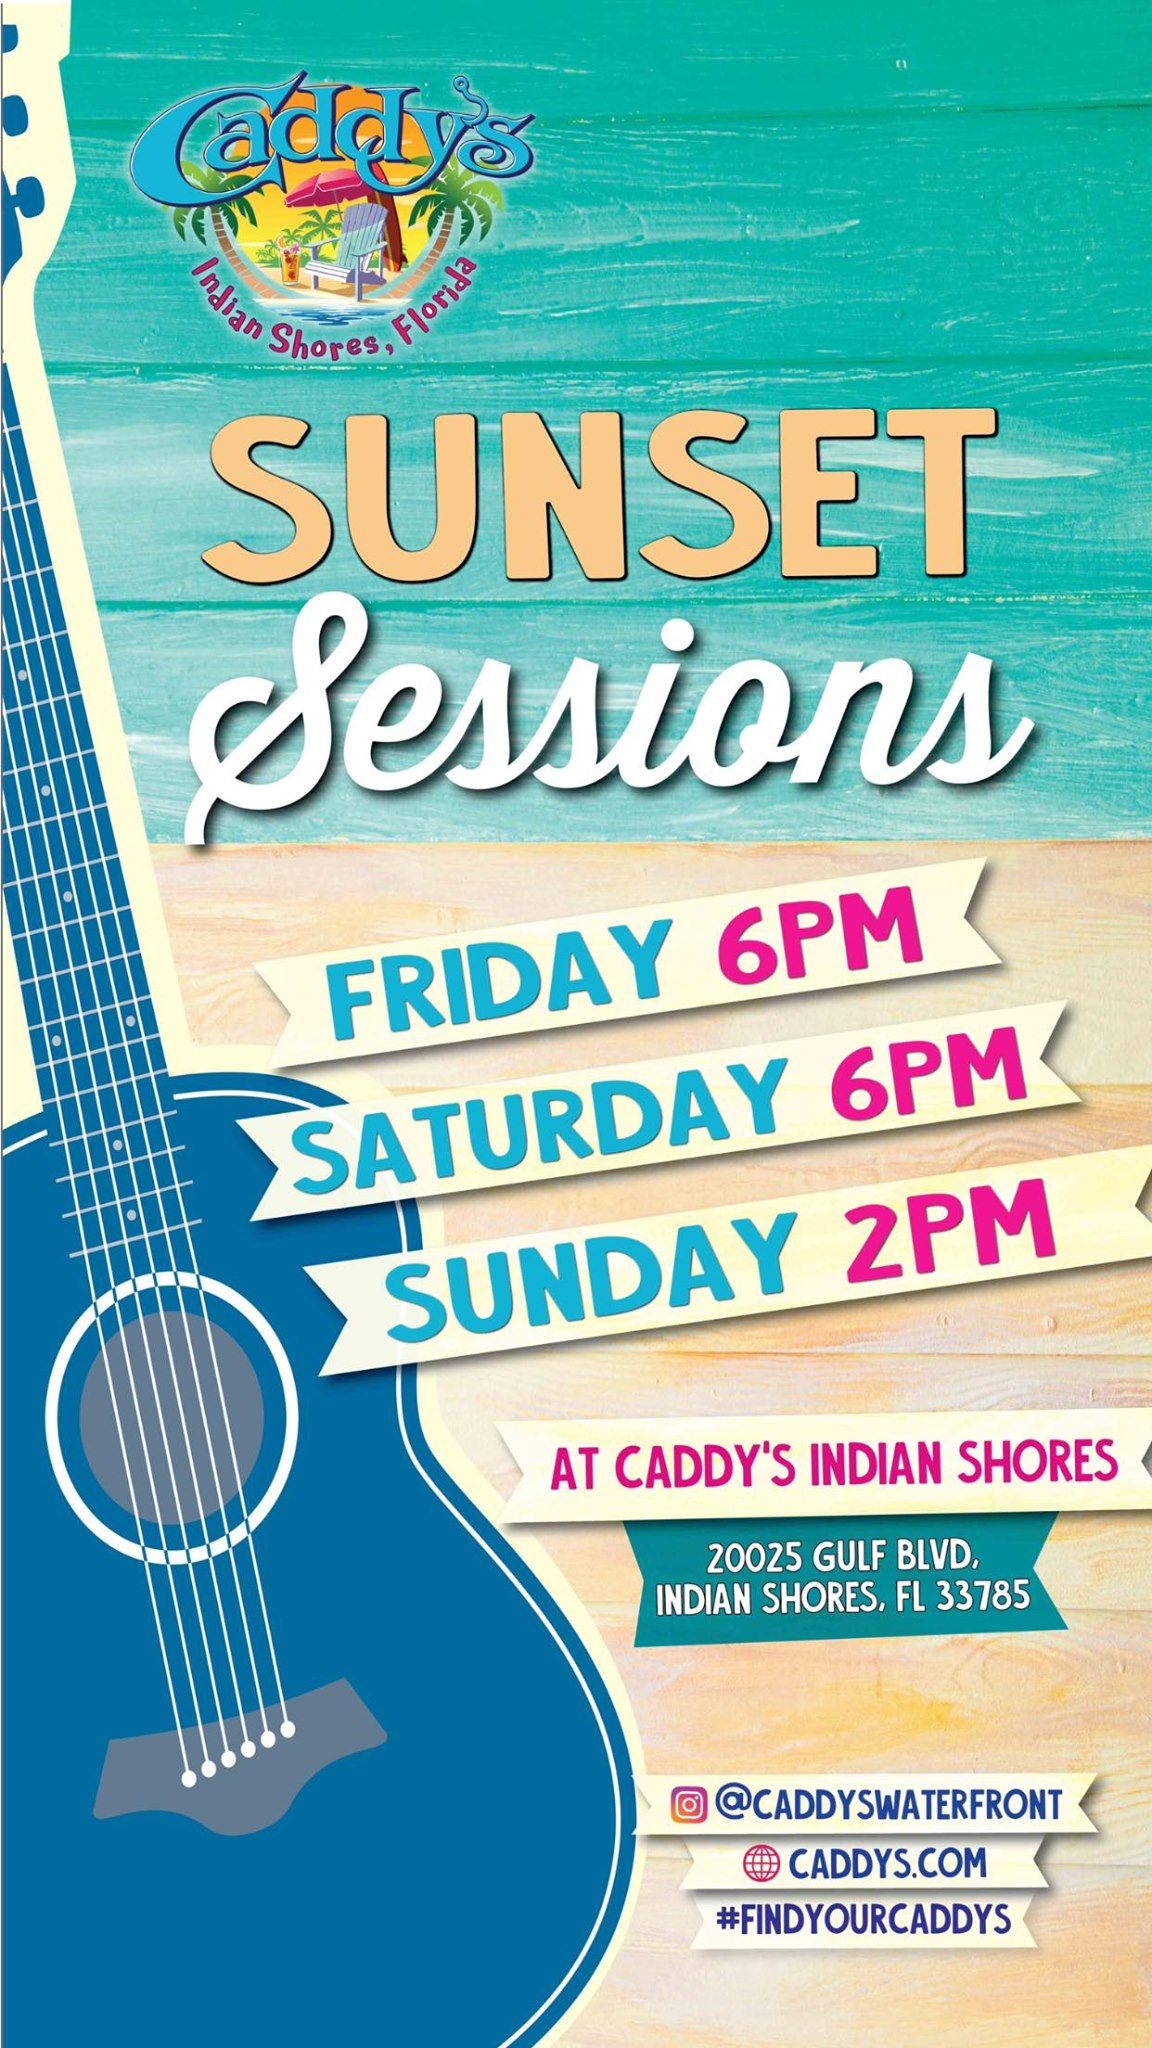 Sunset Live Music Sessions at Caddy's Indian Shores 7/23 - 7/25